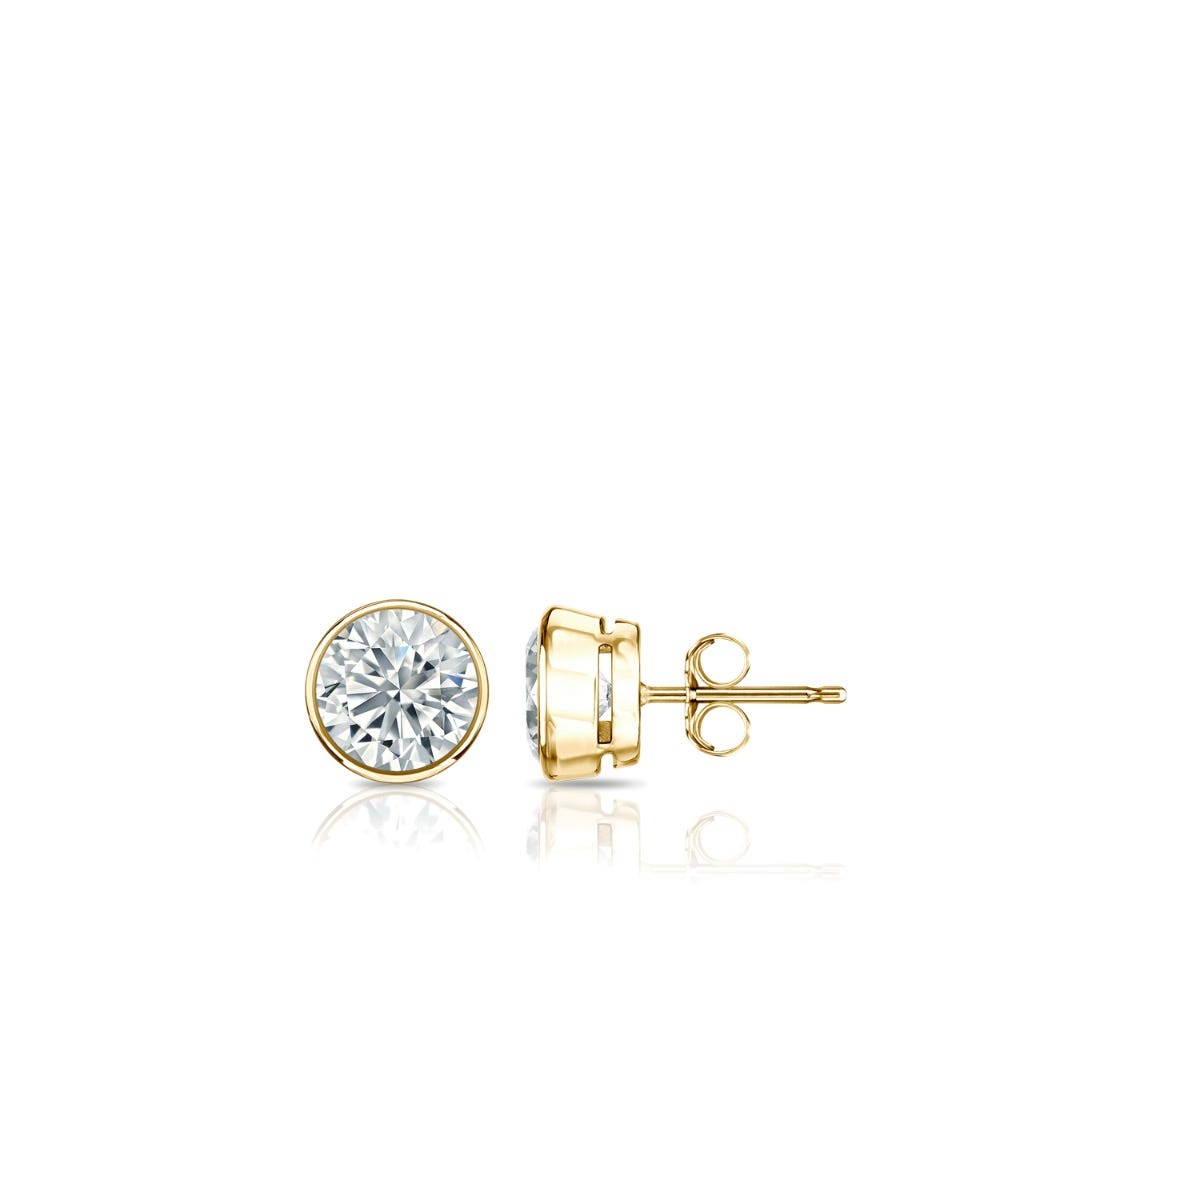 Diamond Round Bezel-Set 1/10ctw. Solitaire Stud (IJ-I2) Earrings in 10K Yellow Gold